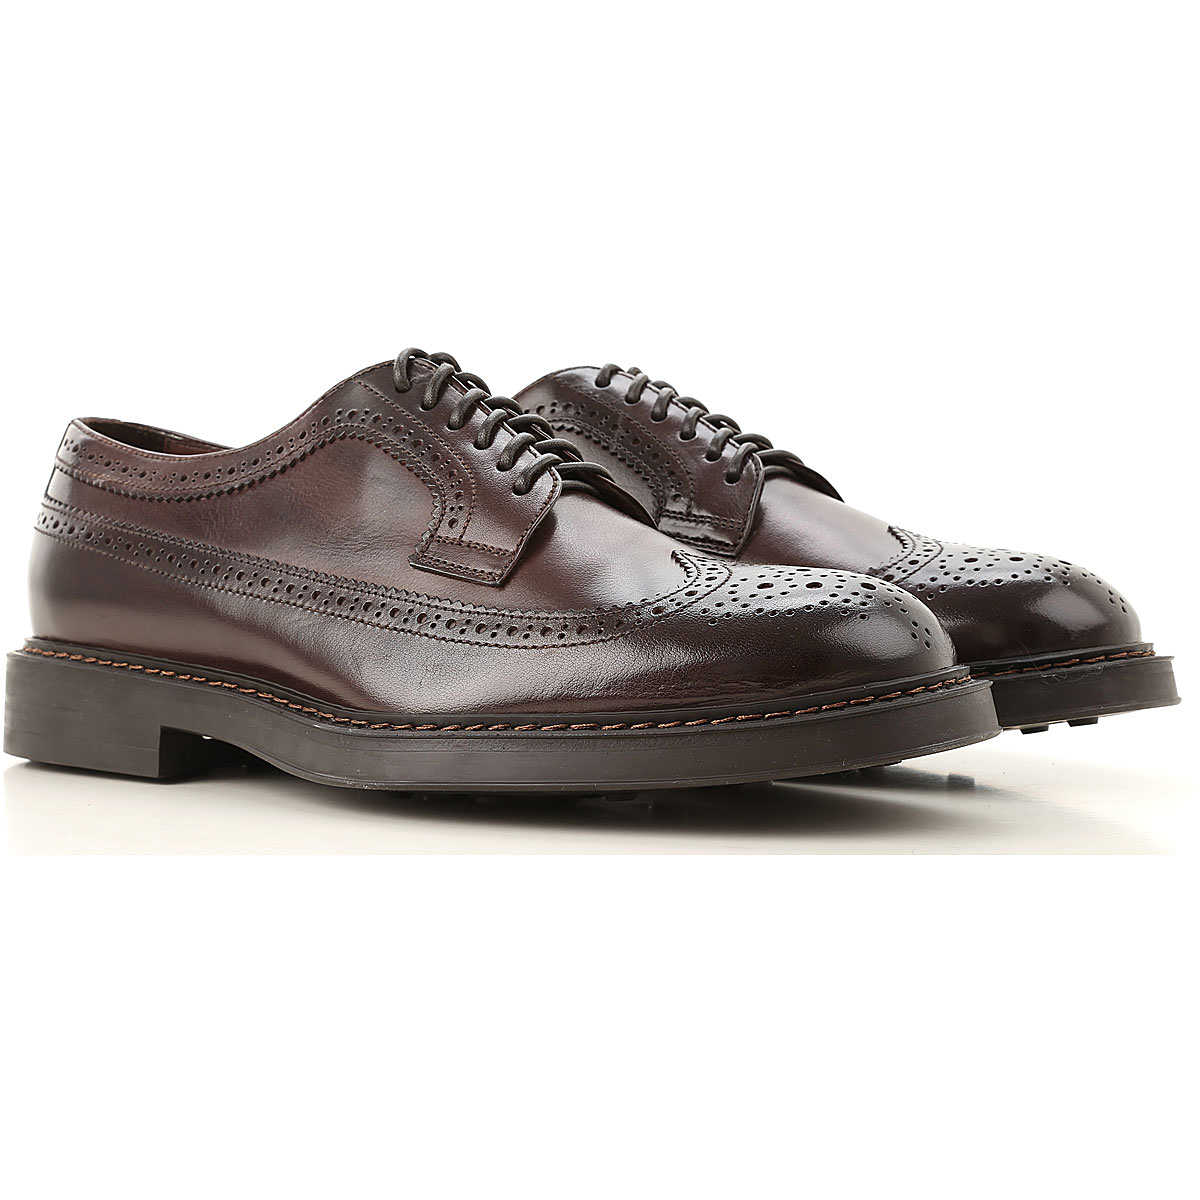 Doucals Lace Up Shoes for Men Oxfords 6 6.5 6.75 7 7.5 8 8.5 9 9.25 9.5 Derbies and Brogues UK - GOOFASH